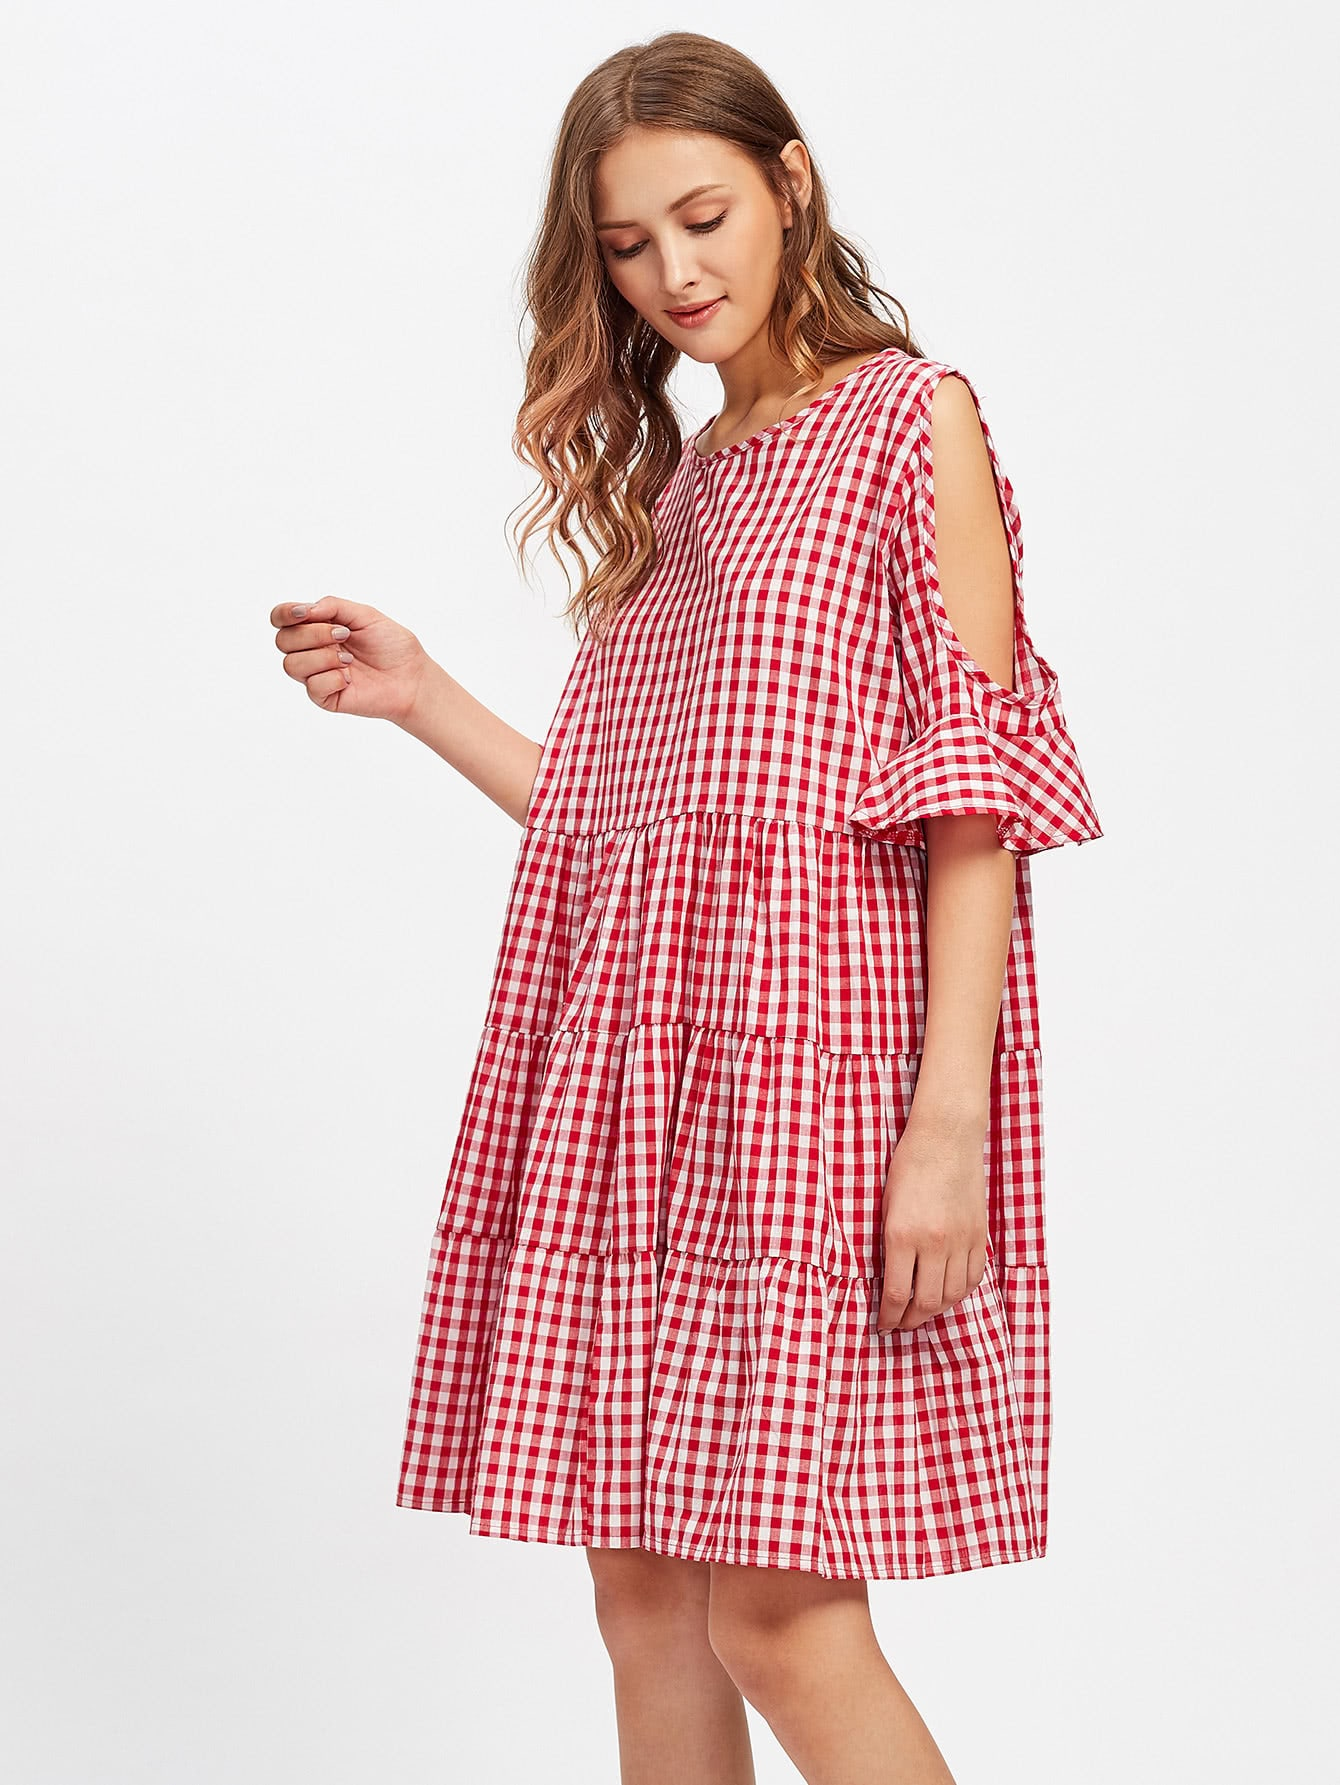 Open Shoulder Frill Cuff Tiered Peasant Gingham Dress contrast lace cuff frill detail smocked gingham dress